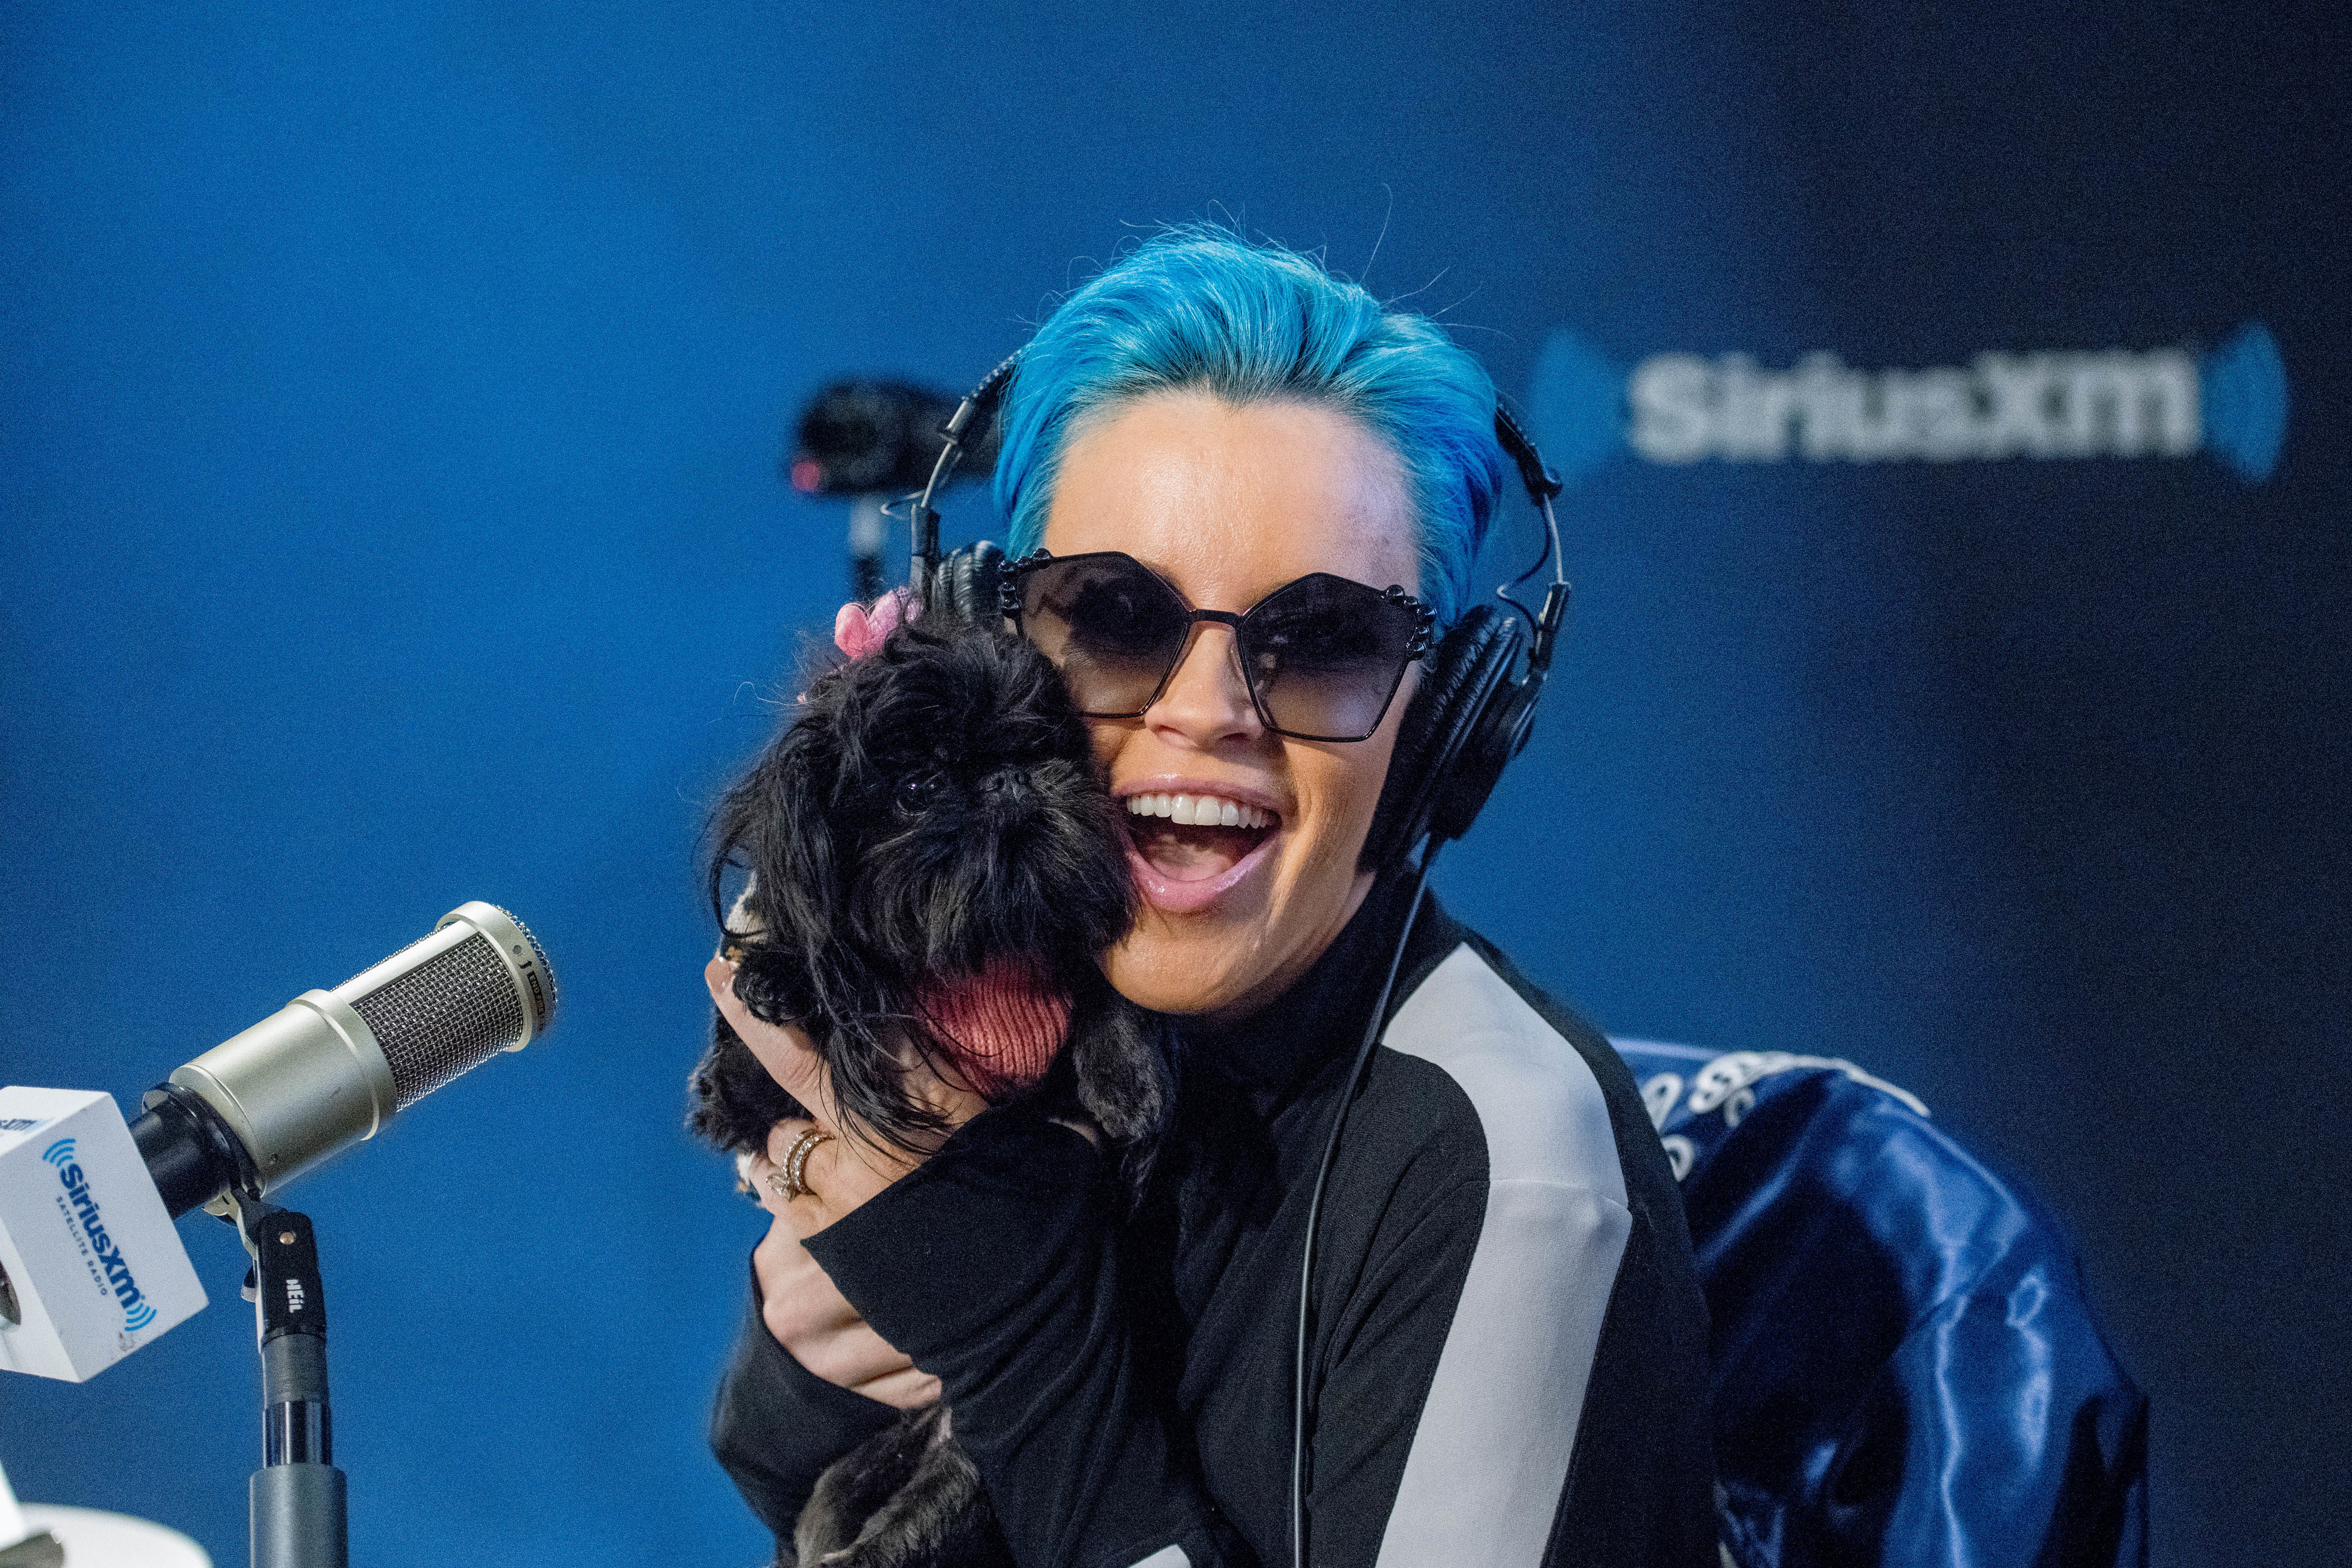 Jenny McCarthy with her dog D.J. hosts the Jenny McCarthy show at SiriusXM Studios in New York City on Feb.14, 2018.